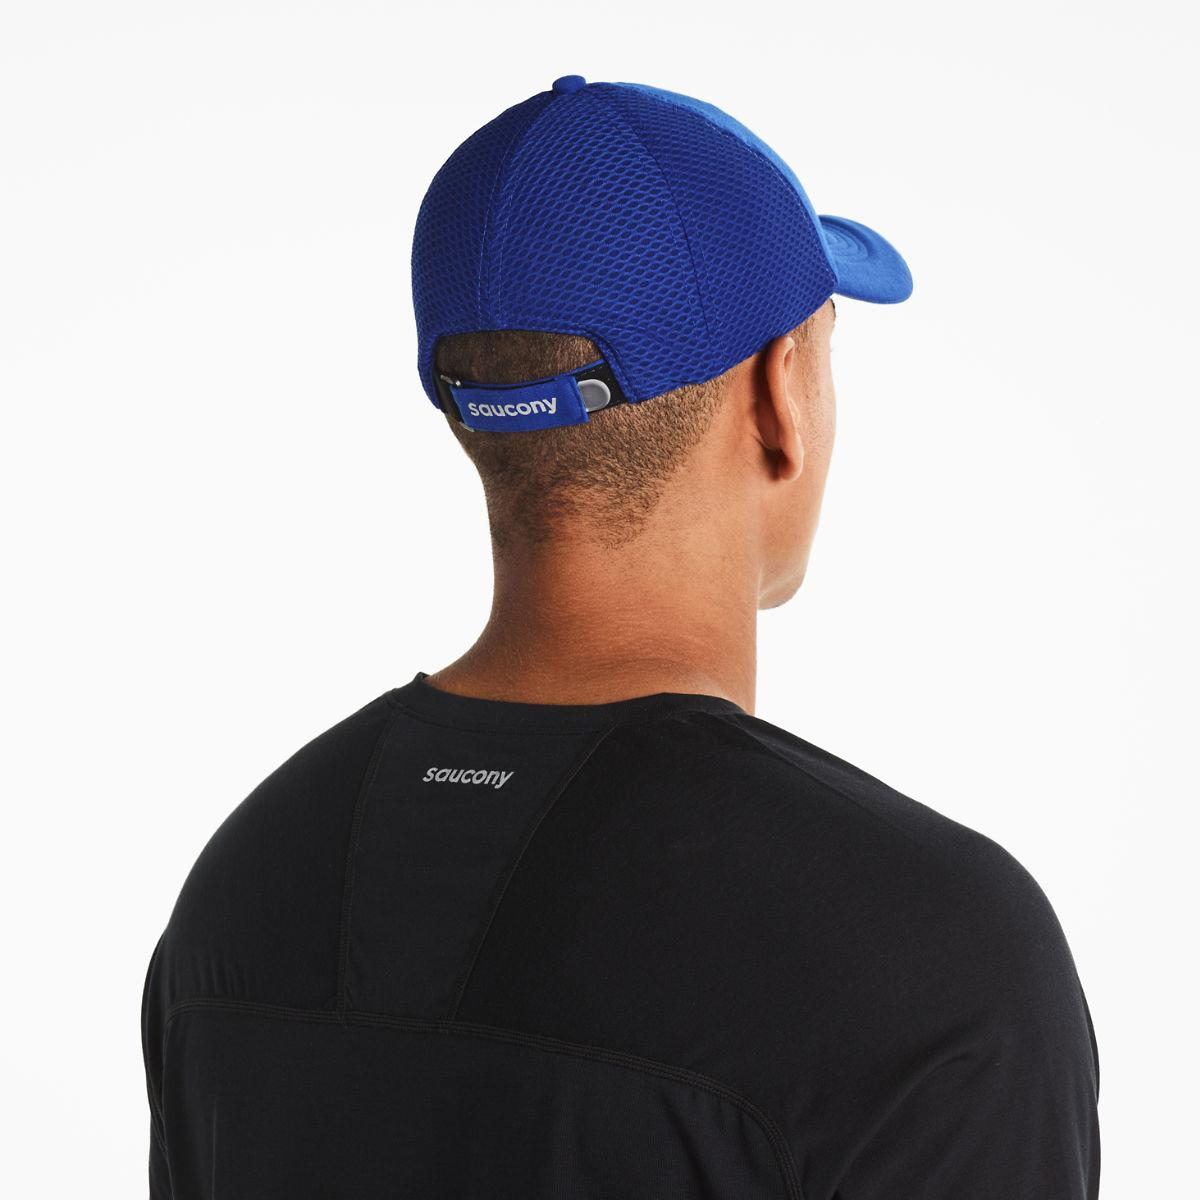 Lyst - Saucony Freedom Cap in Blue for Men 6c36bf584a4